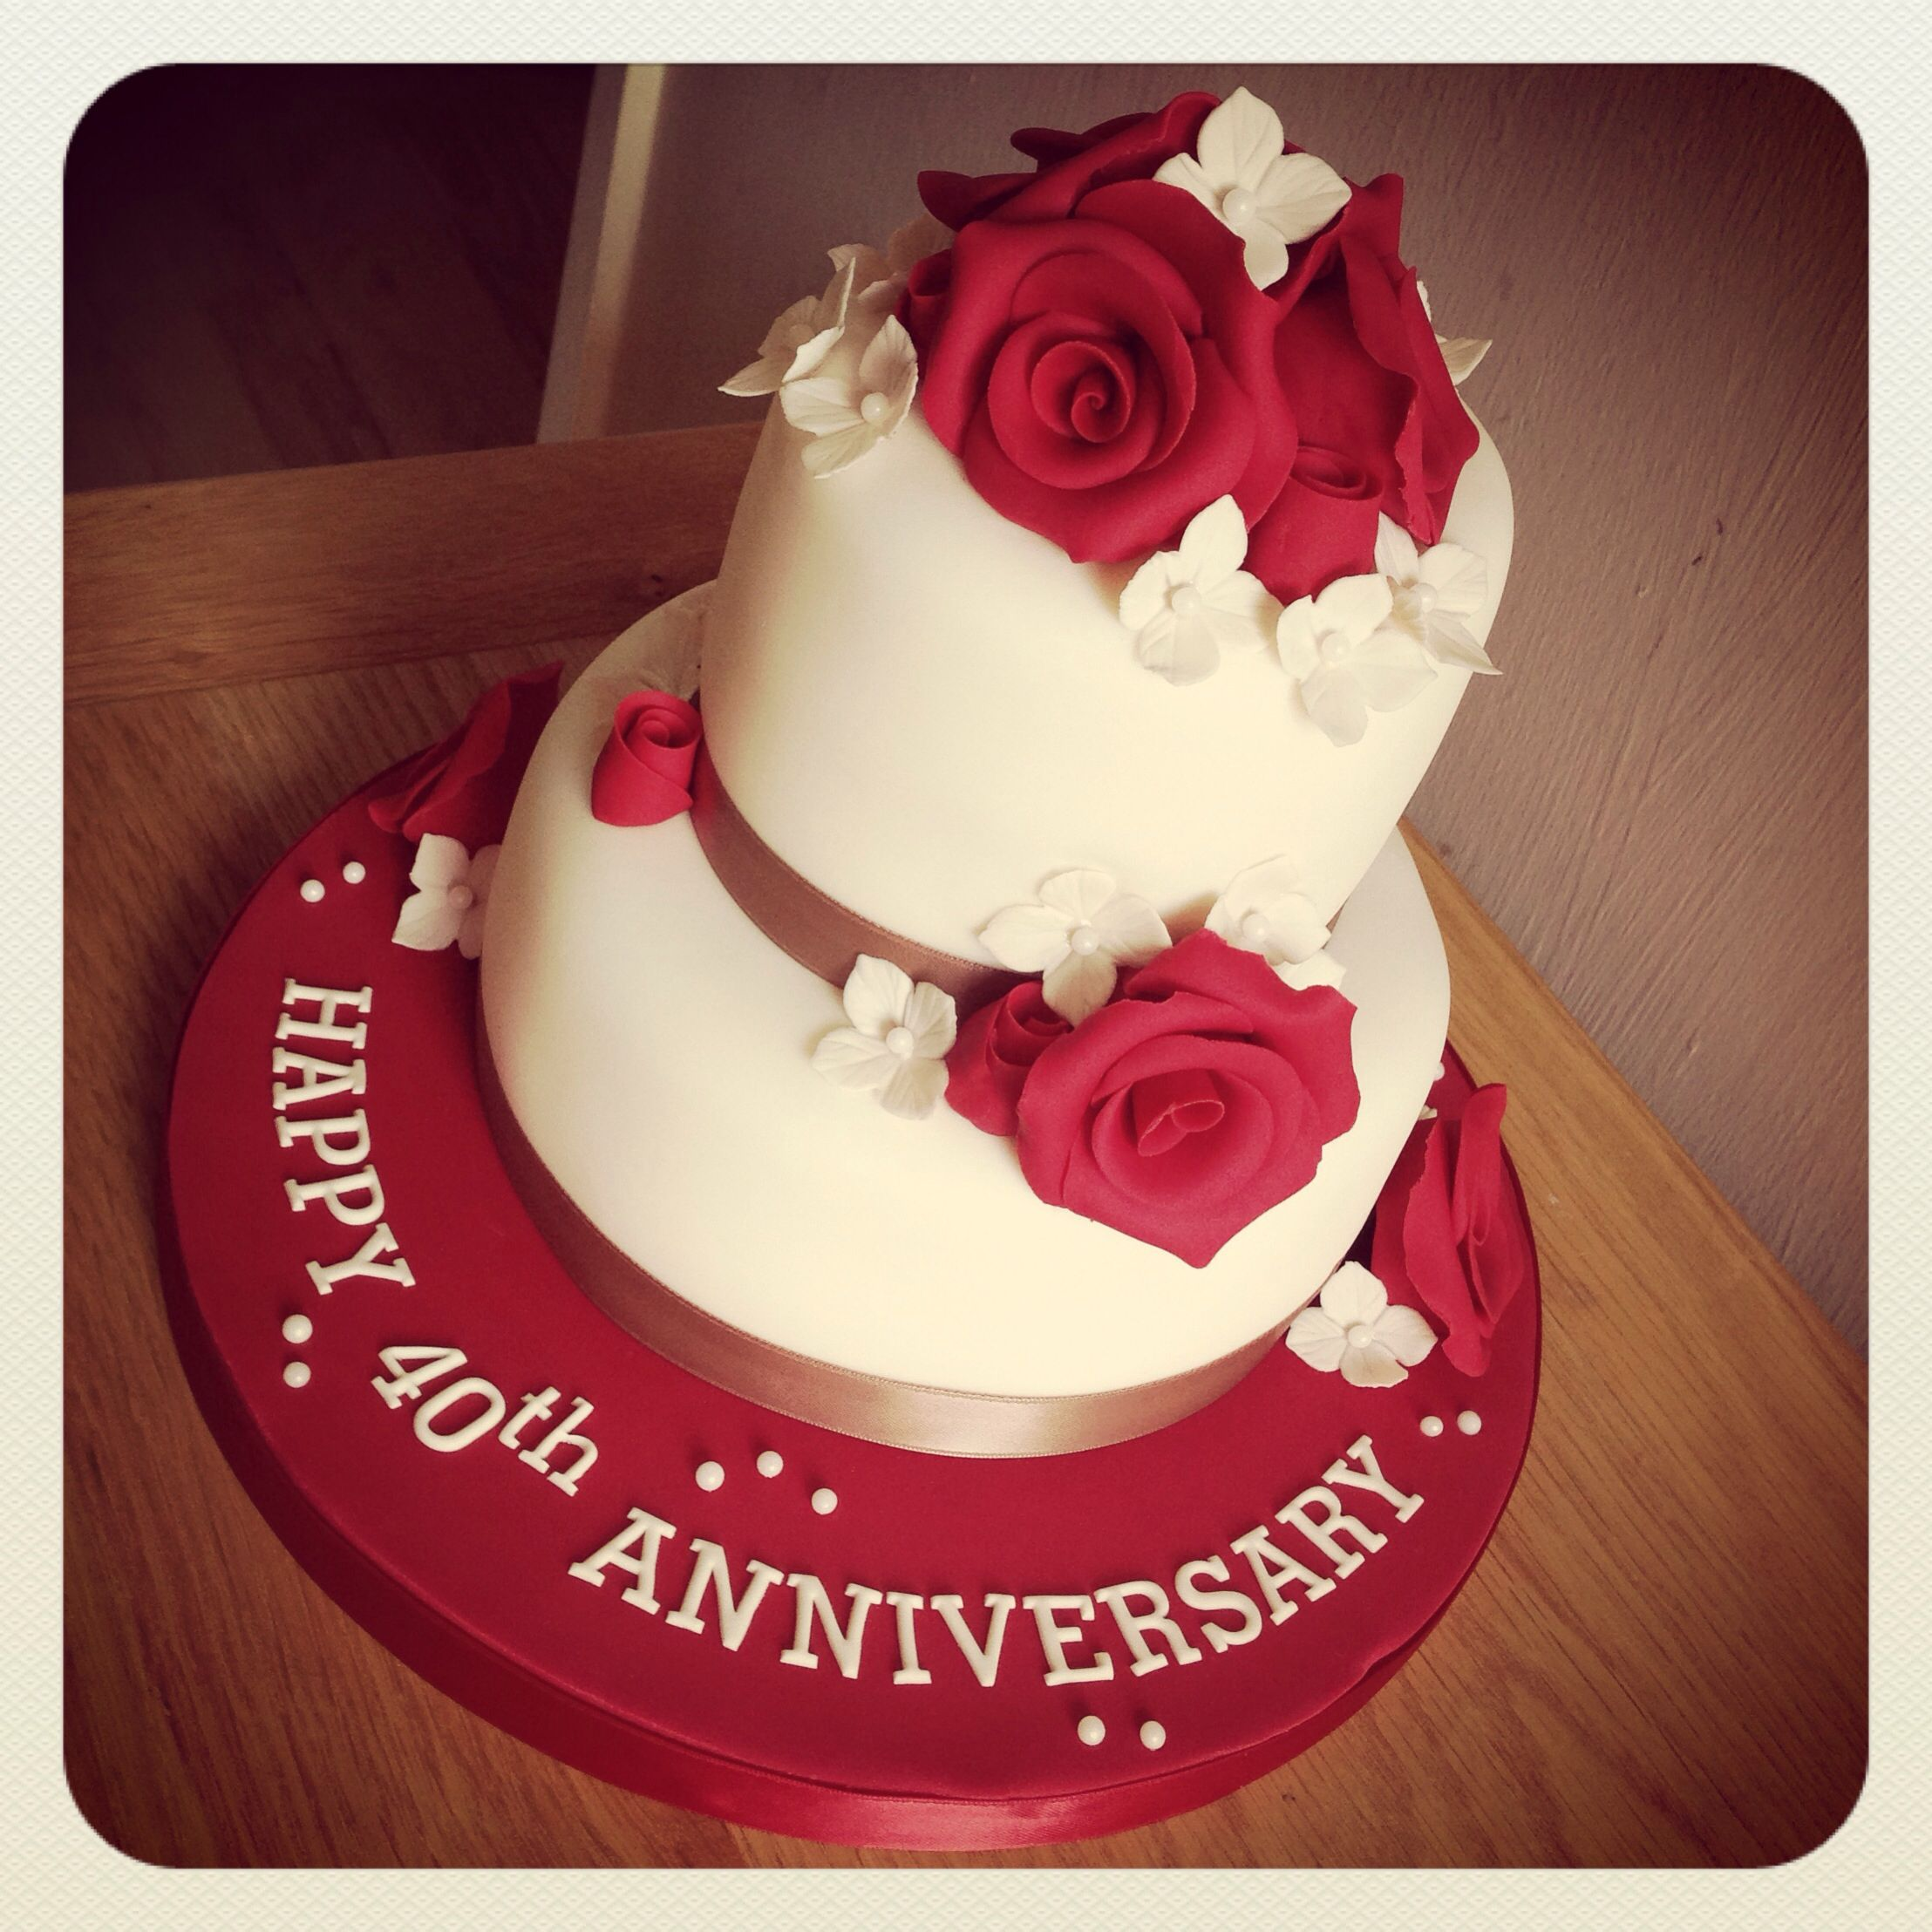 Cake Ideas For Wedding Anniversary: Perfect Ruby Wedding Anniversary Cake